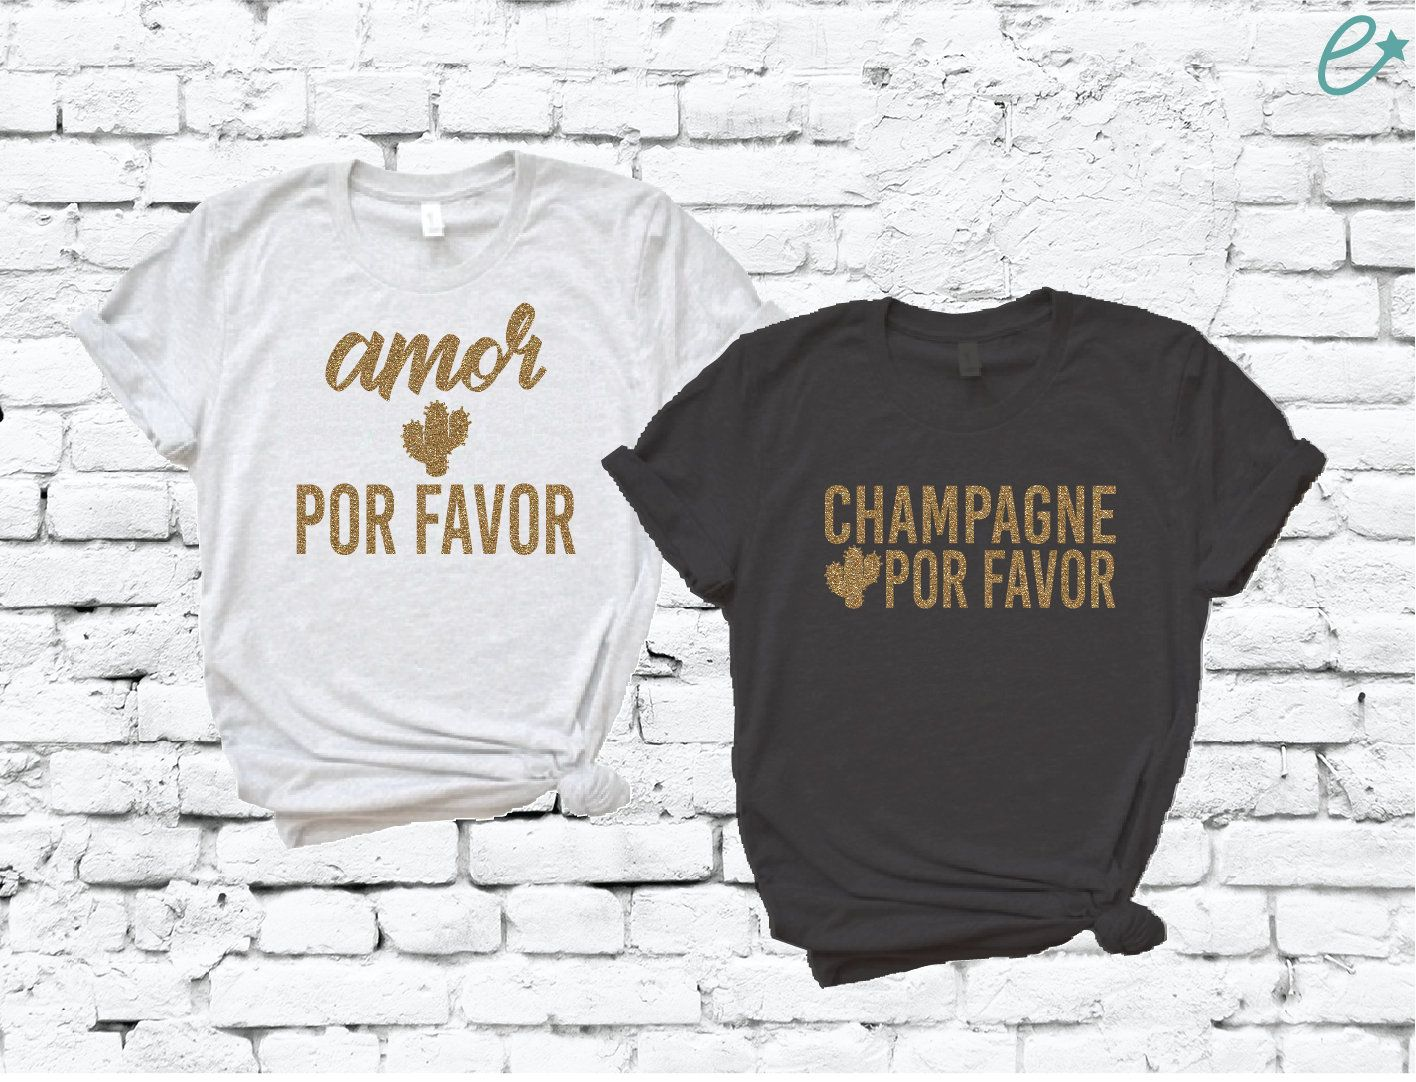 Amor Por Favor and Champagne Por Favor Cactus Shirts 3413 BELLA+CANVAS Unisex Triblend Tee Soft 50% polyester/25% Airlume combed and ring-spun cotton/25% rayon, 40 singles 3.8 ounce triblend t-shirt. Fabric combination has an extremely soft hand. Side-seamed. Retail fit. Unisex sizing. How to Care for your Custom: Hand Wash and Hang, or Machine Wash Cold, Tumble Dry Low If you have any questions feel free to ask via message :-) Thank you! Stay Empowered!